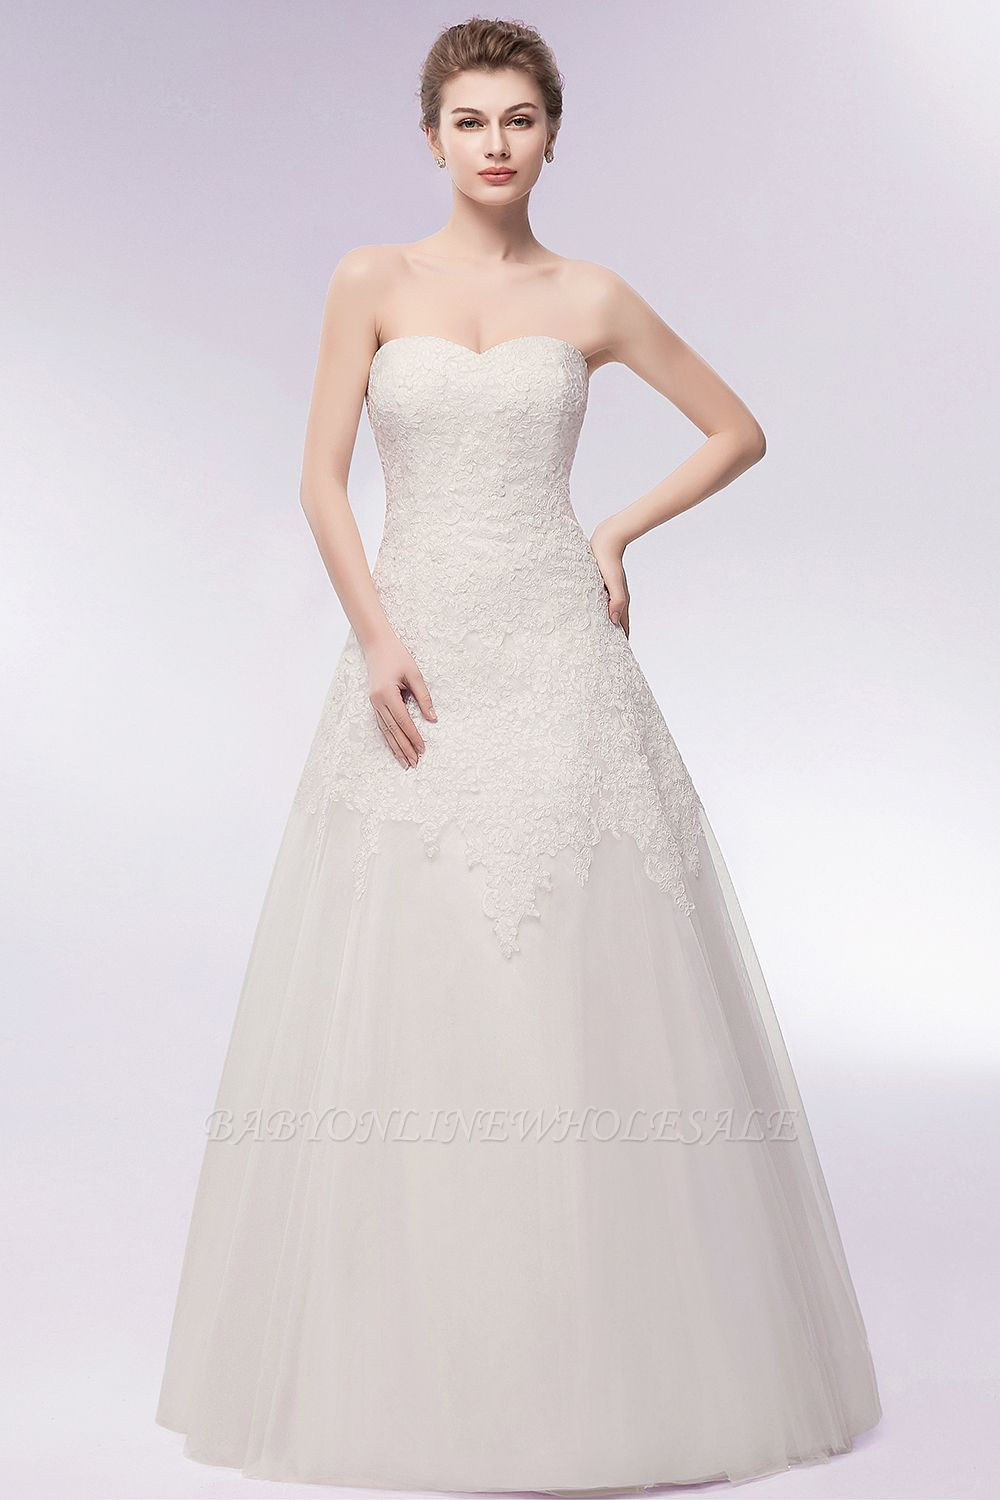 WIHELMINA | A-line Sweetheart Strapless Long Lace Tulle Wedding Dresses